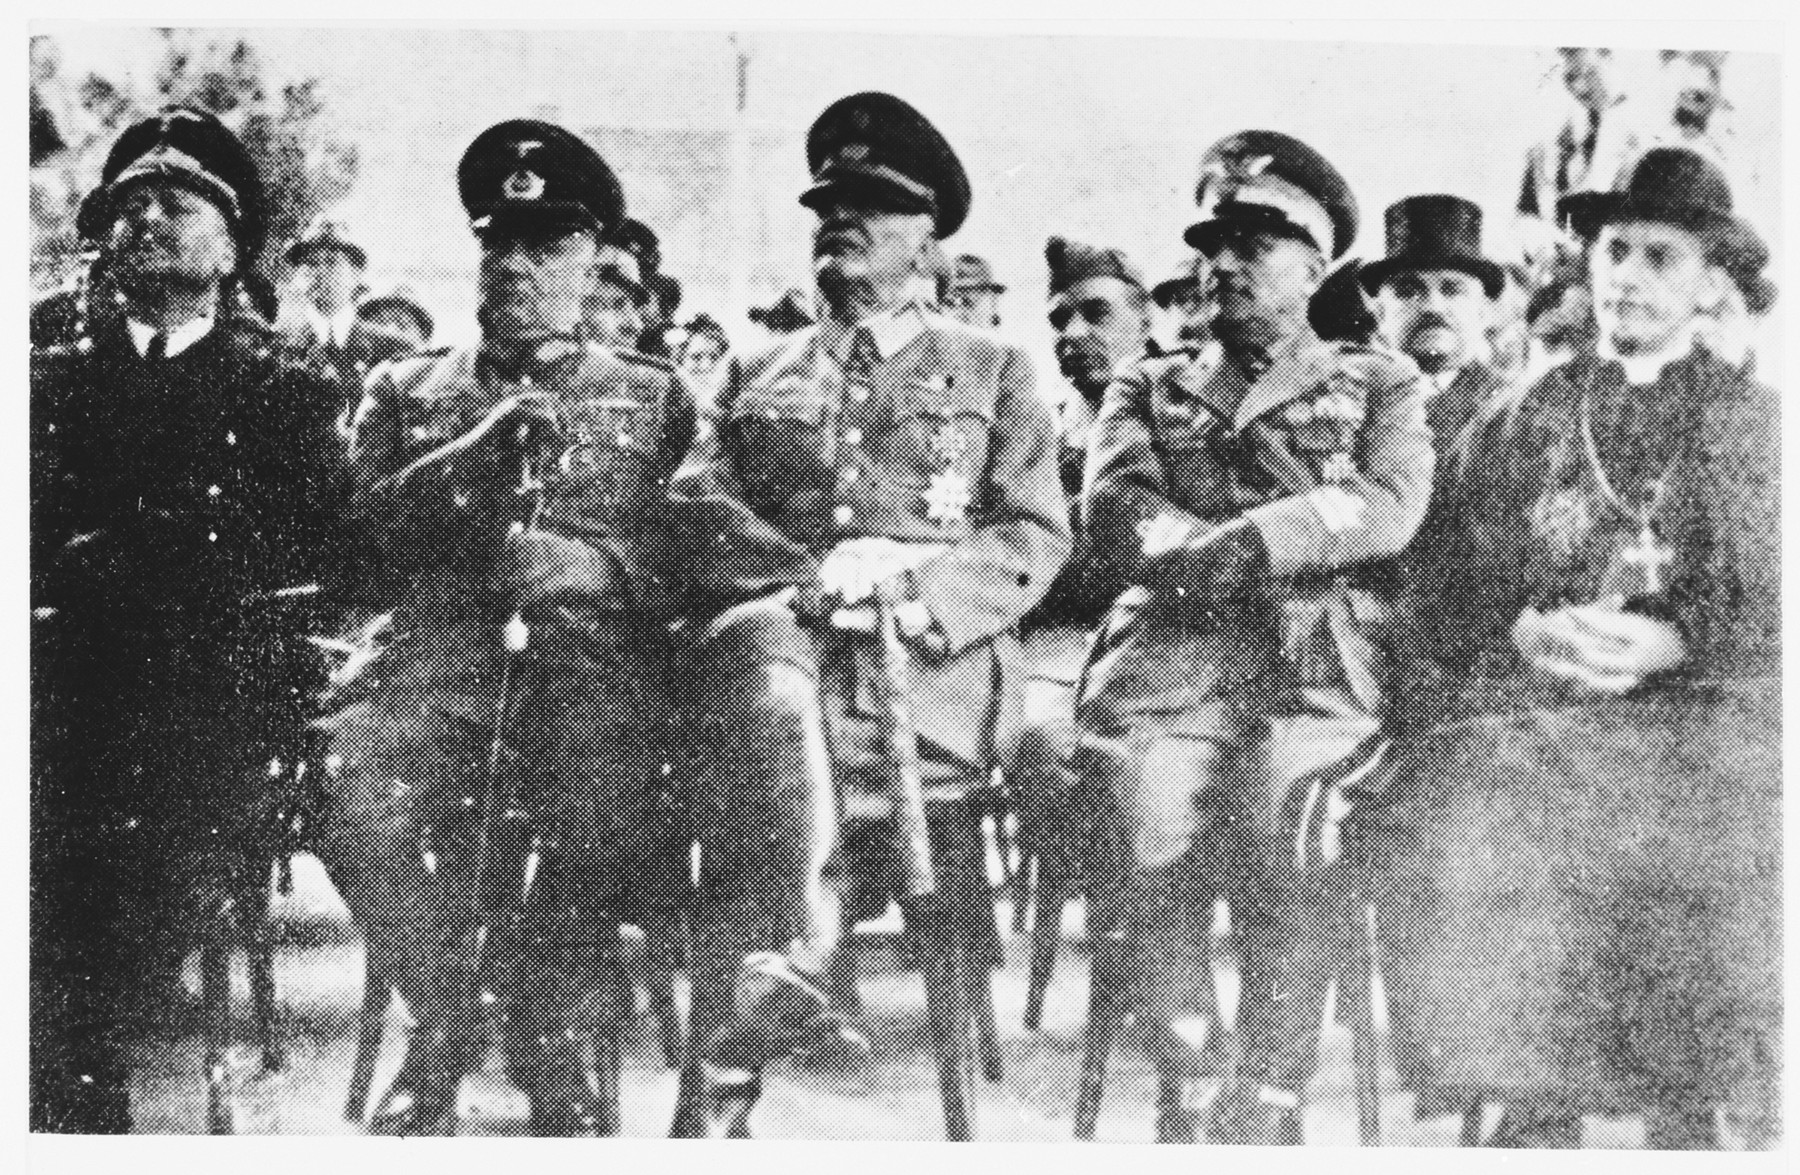 Croatian military and clerical leaders attend a ceremony.  From left to right are General von Troll (Councellor of German Legation),General Gleise Horstenau, General Slavko Kvaternik (NDH),General Mario Roata (Italy) and Archbishop Stepinac